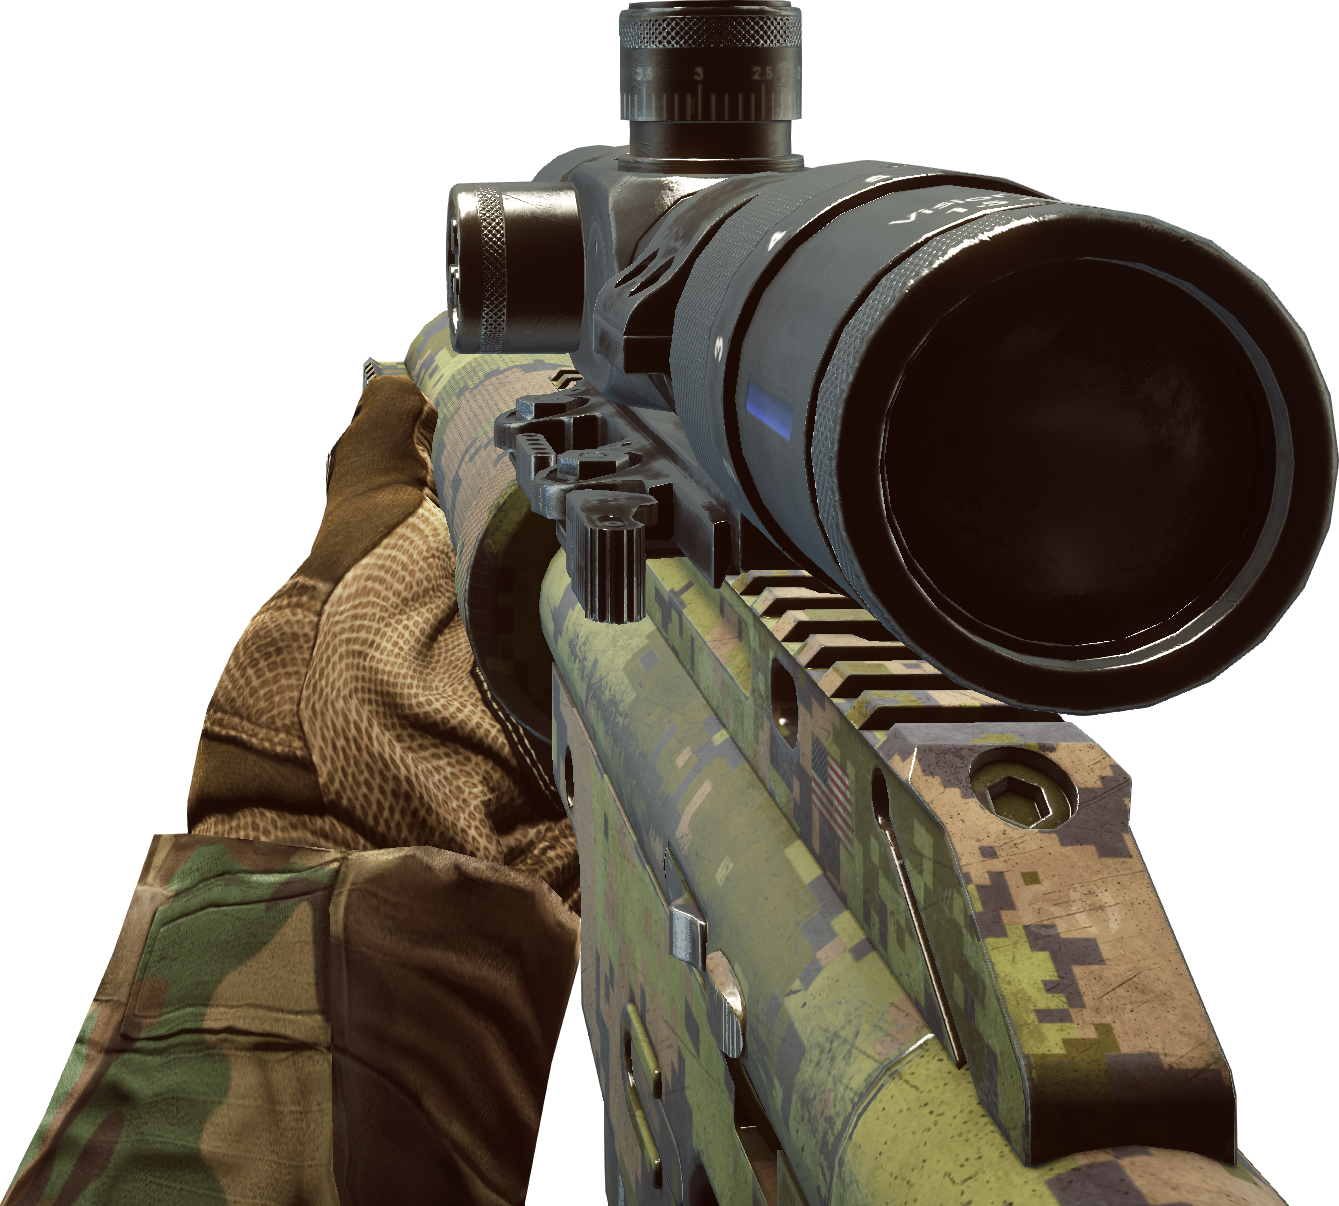 Image cs bf wiki. Battlefield 4 sniper png svg library